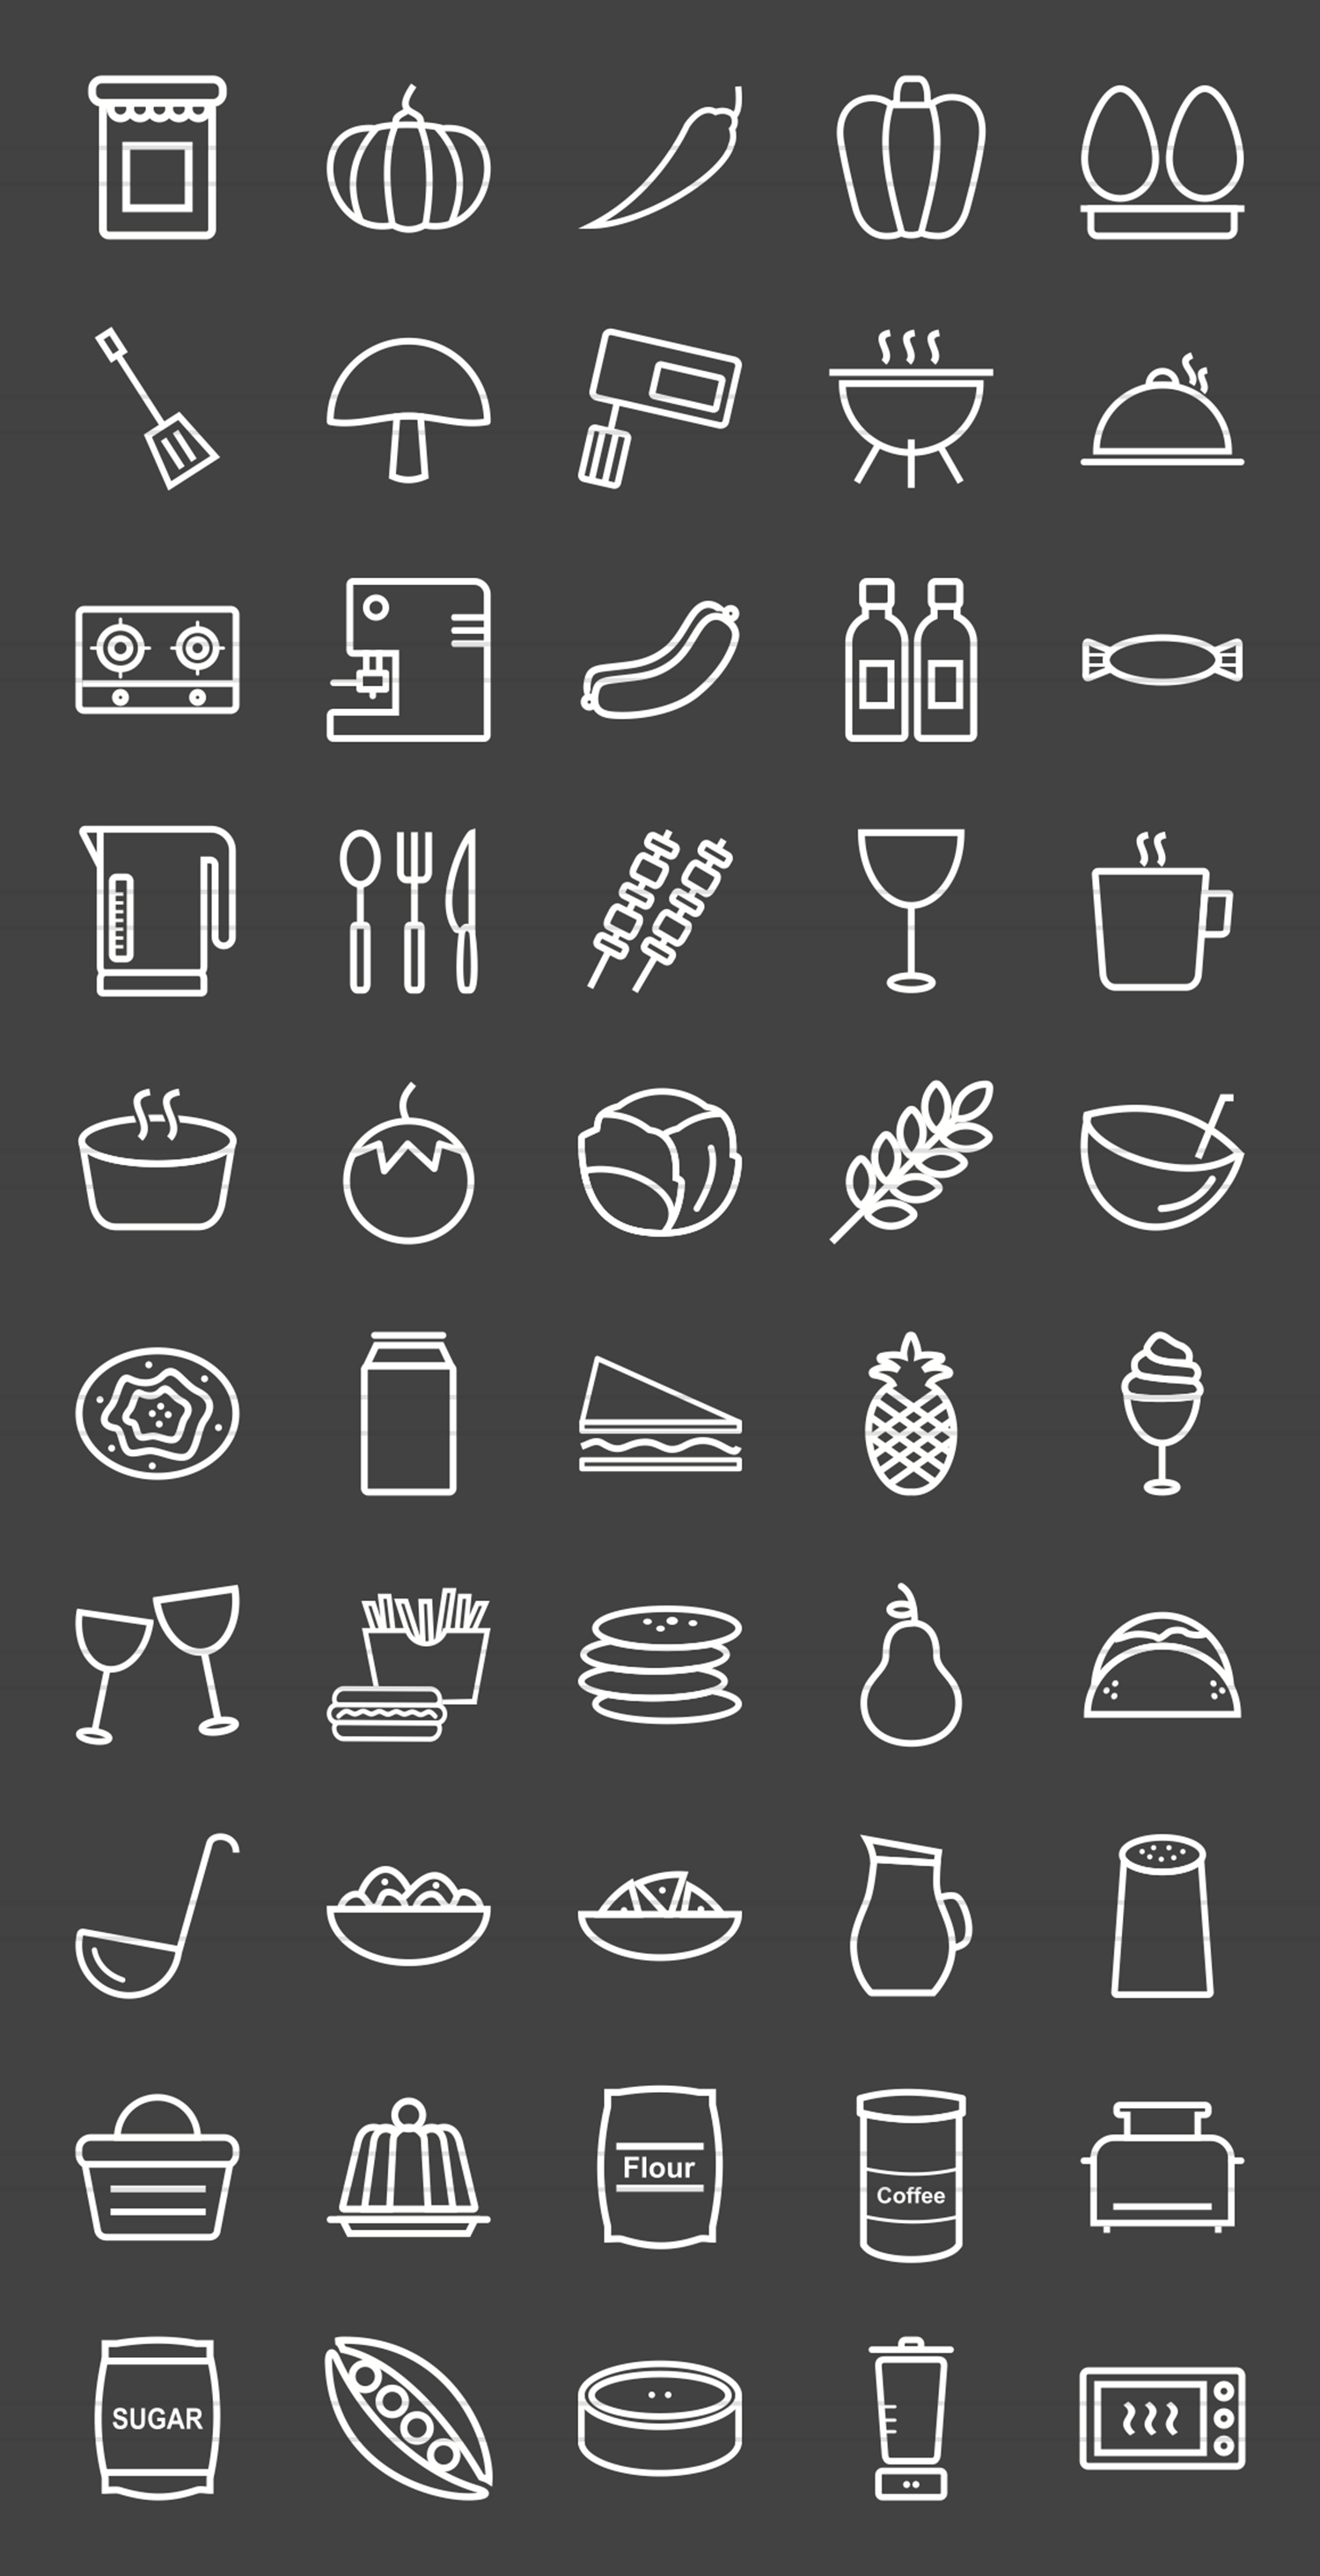 50 Food Line Inverted Icons example image 2